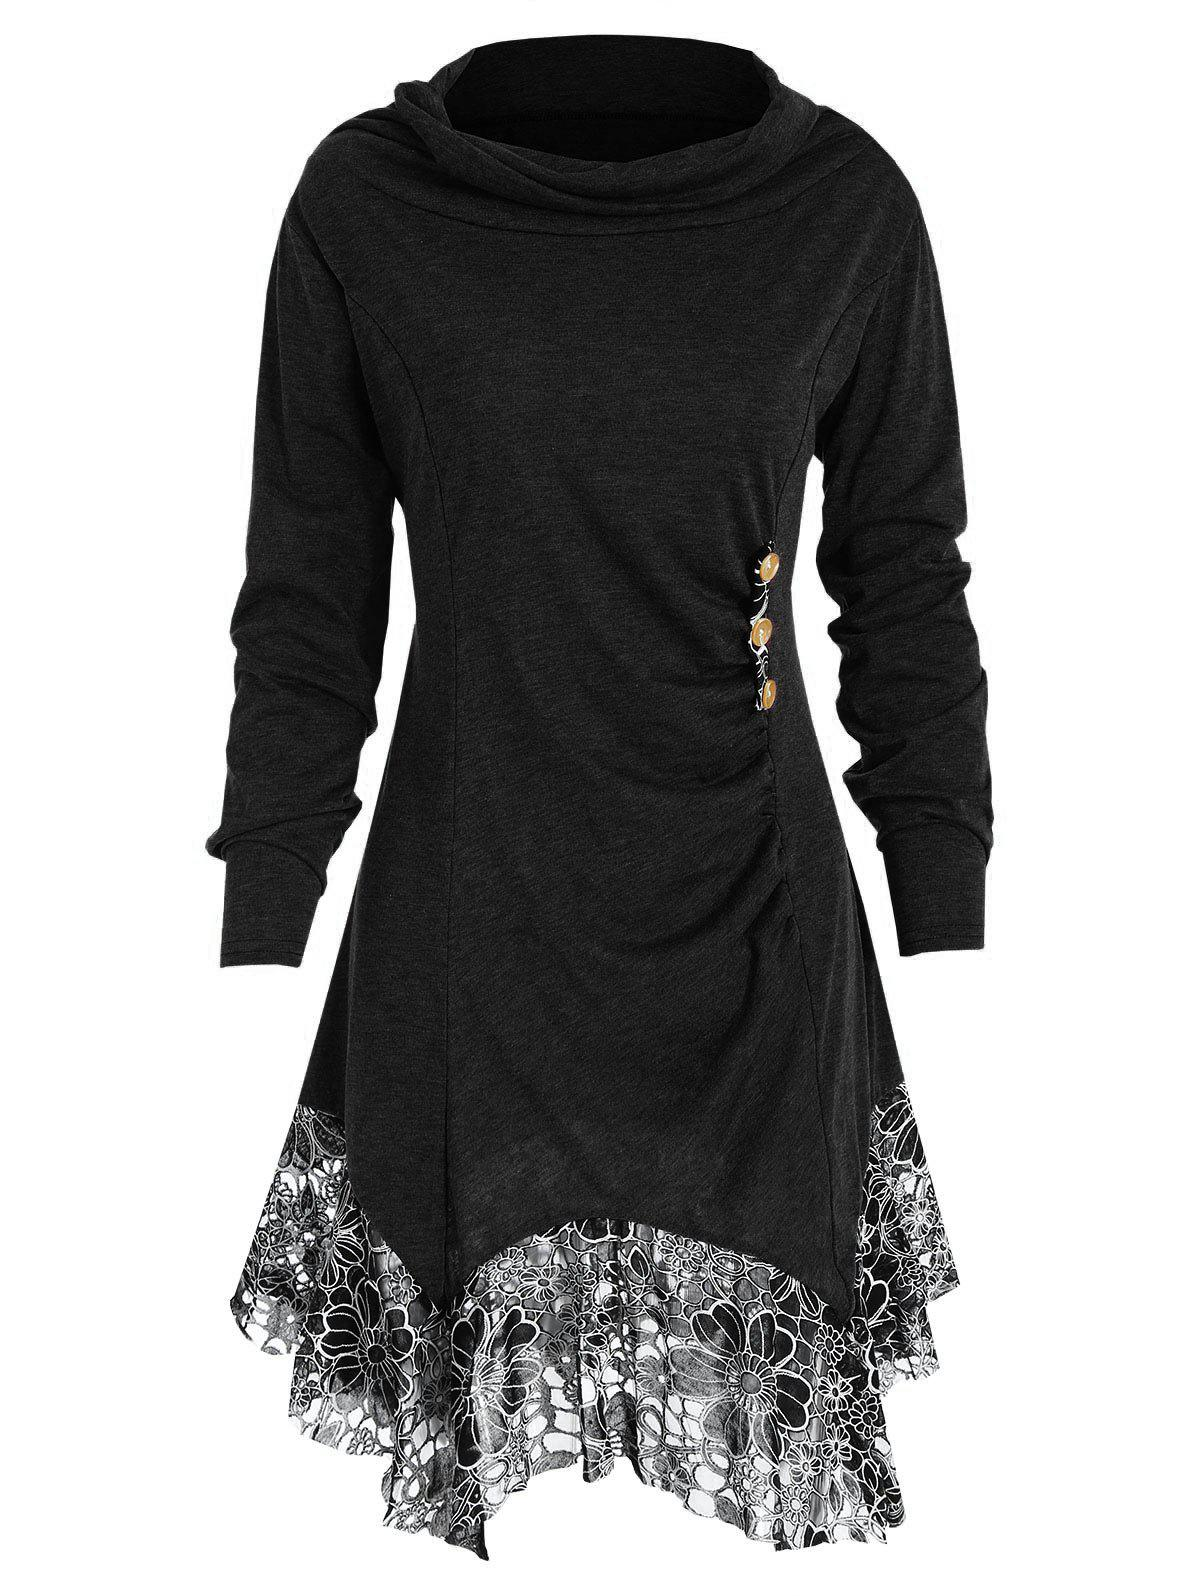 Fashion Plus Size Heaps Collar Lace Panel Tunic Top